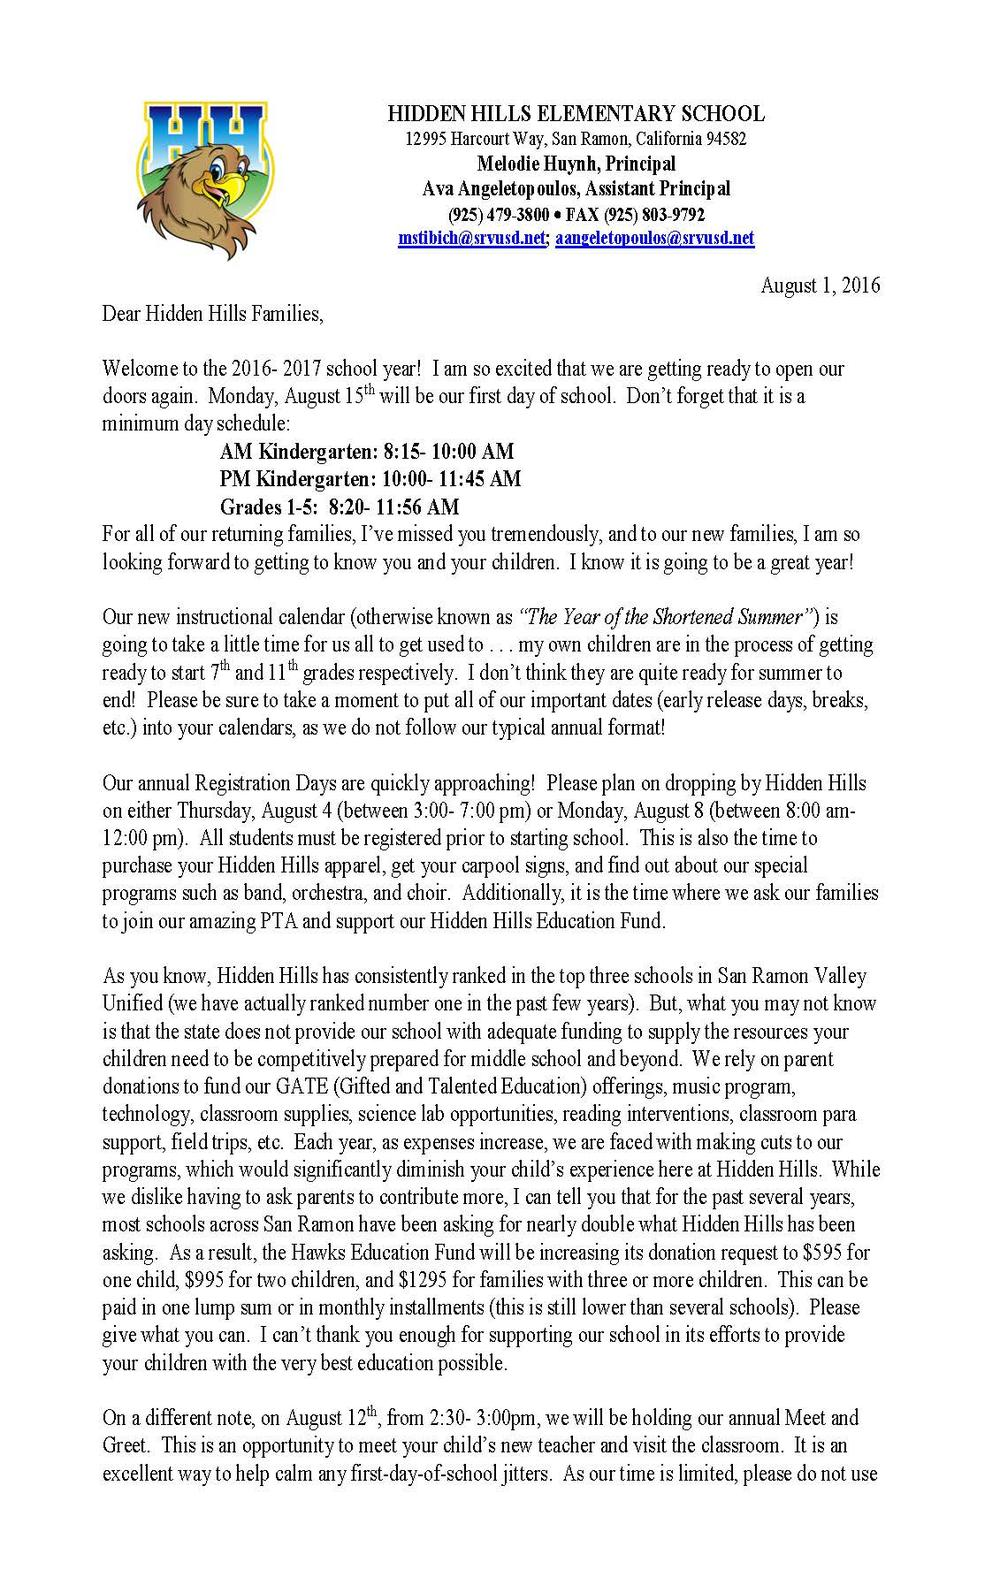 2016-08-02-14-23-34_Back to School Parent Letter 2016_Page_1.jpg